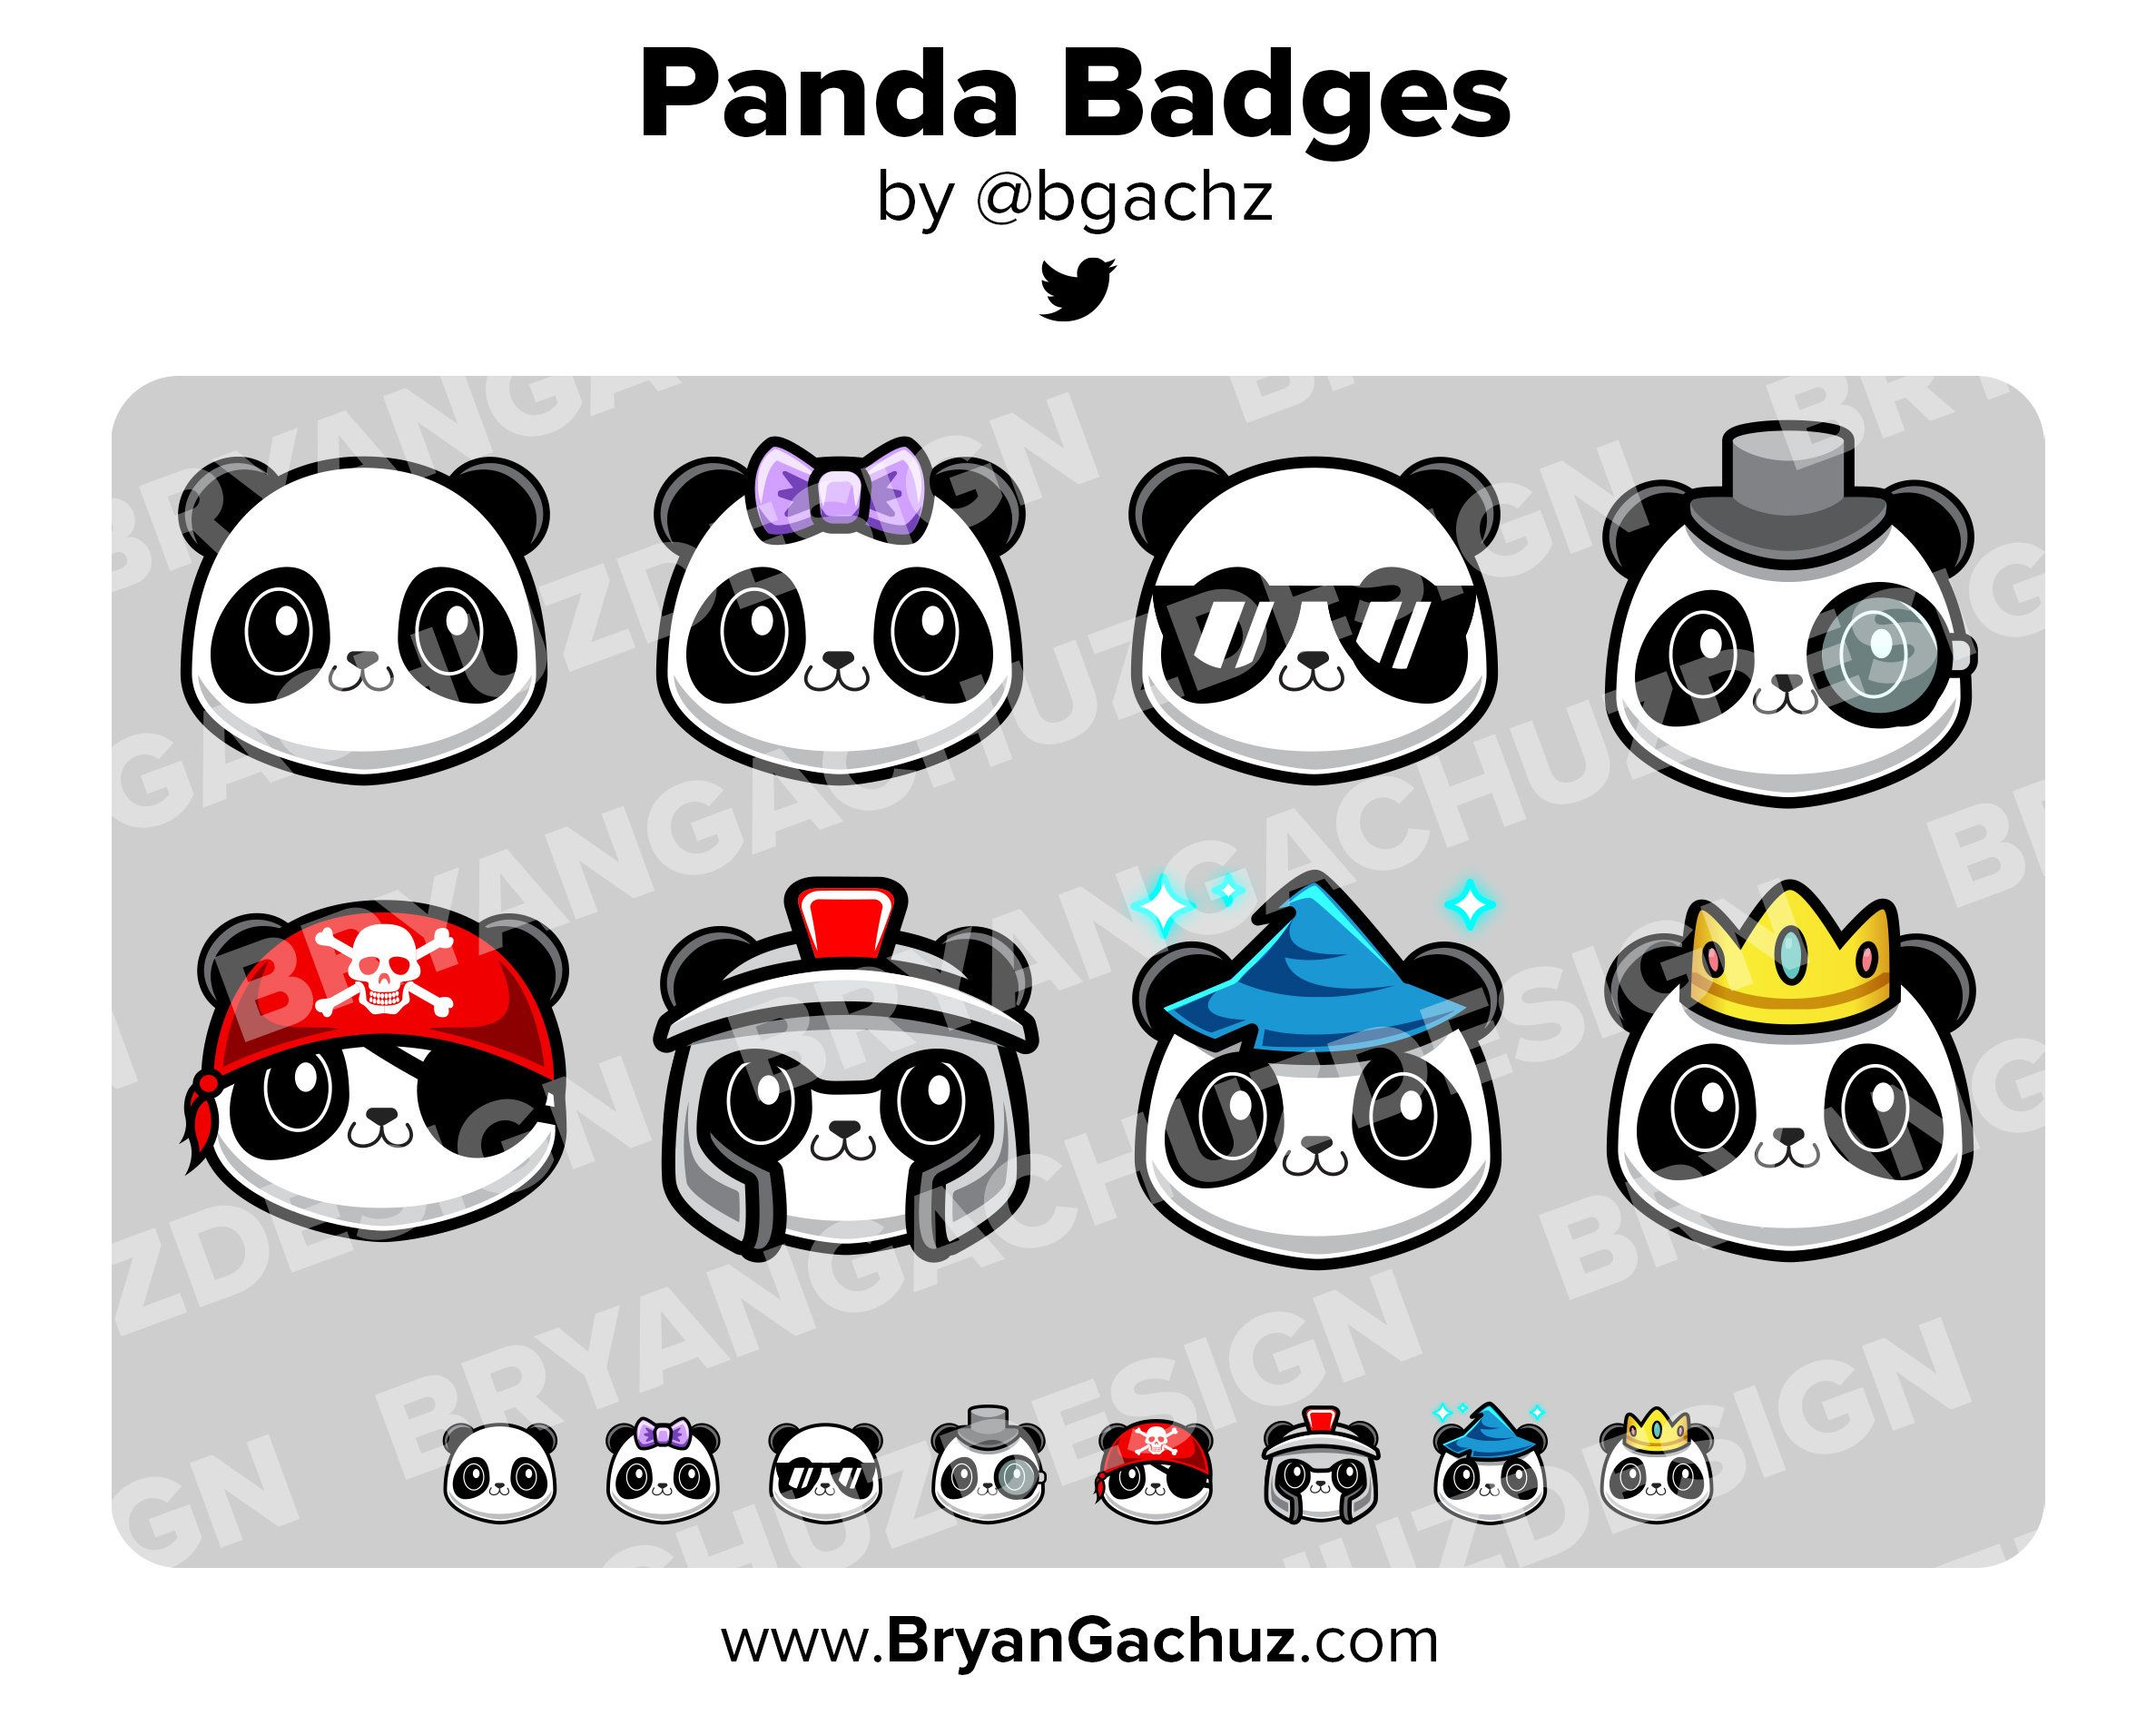 Panda subscriber loyalty bit badges for twitch discord or